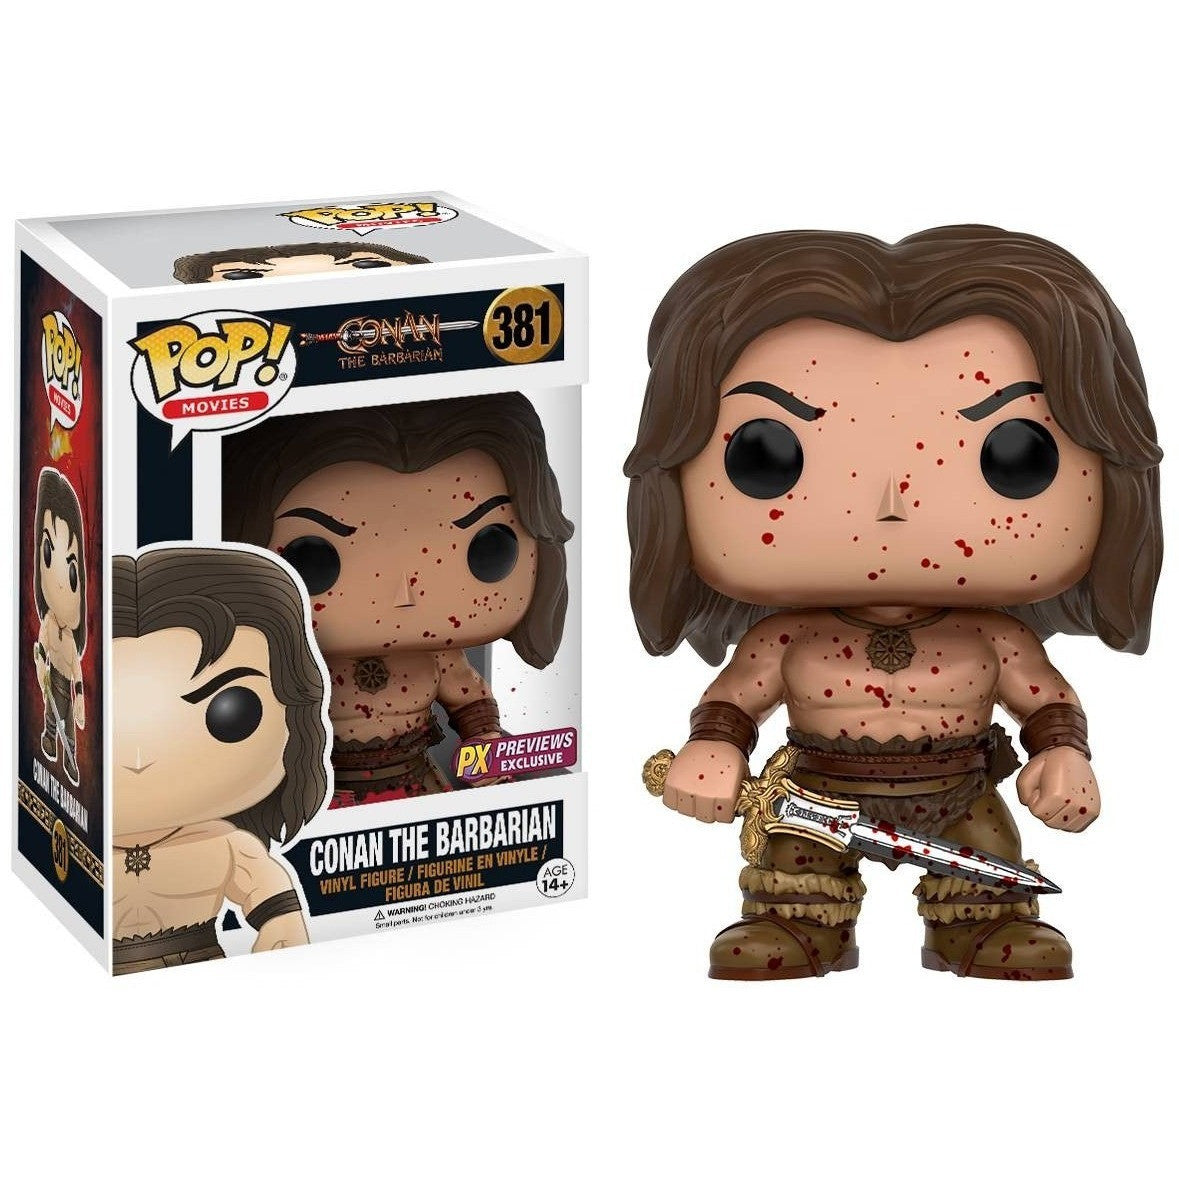 Conan the Barbarian Pop! Vinyl Figure Uncanny!